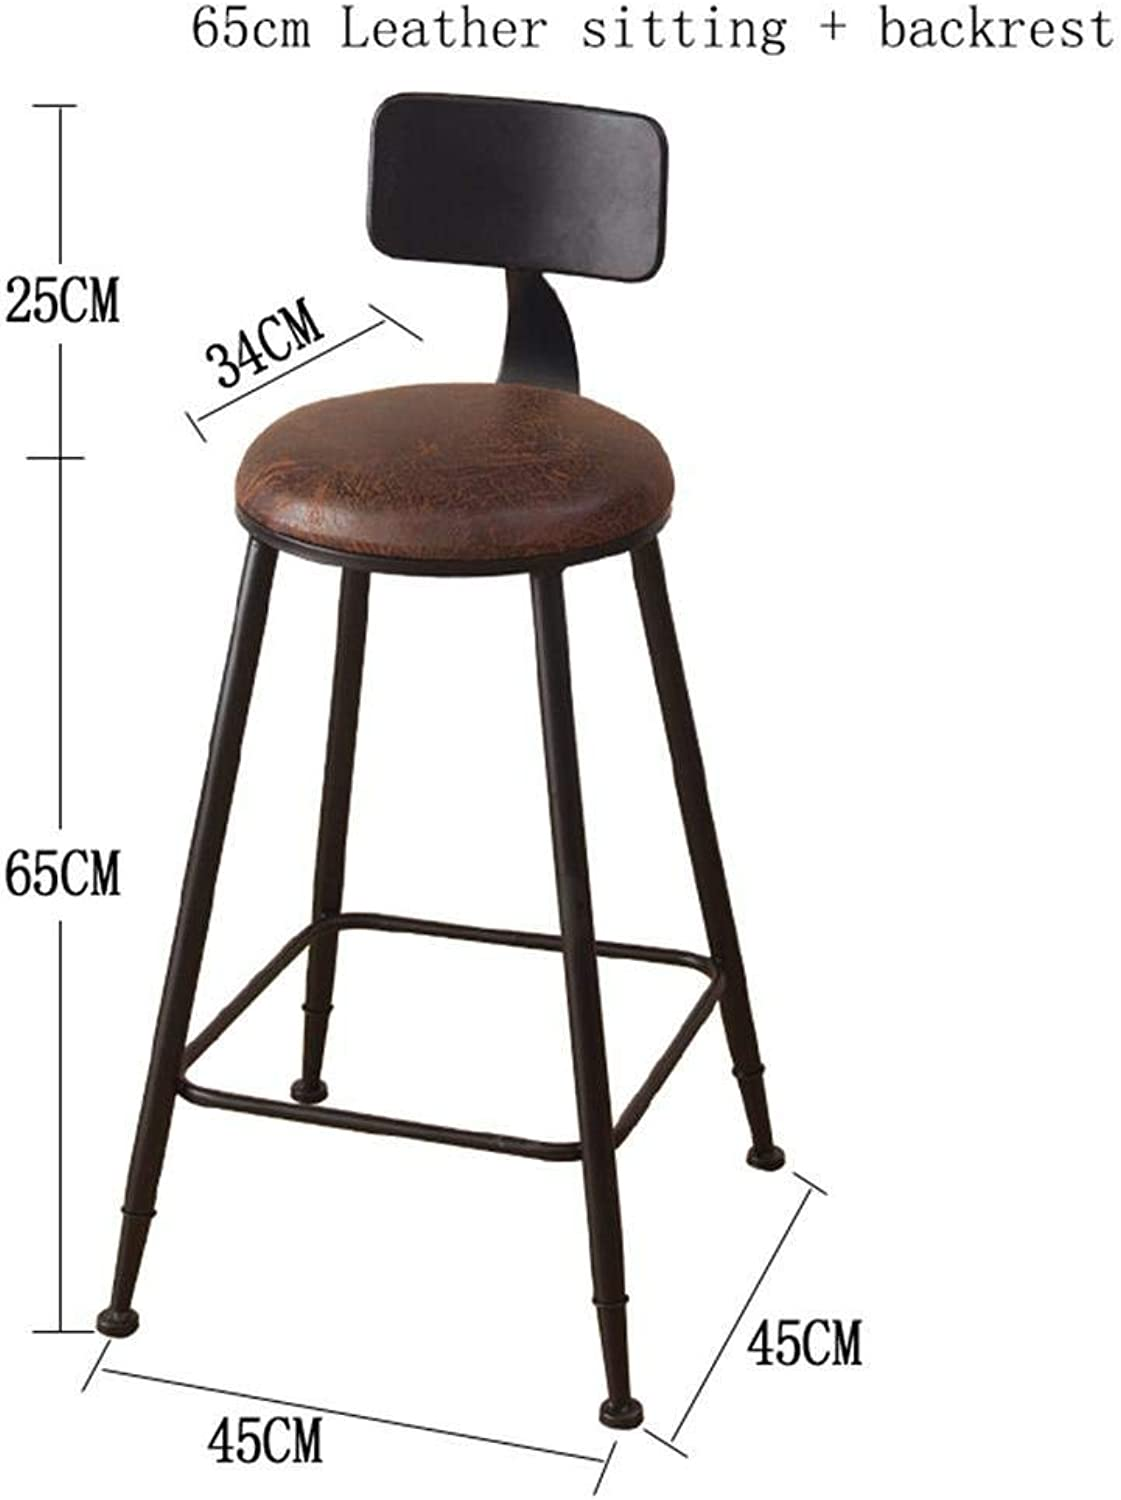 Bar Stool Coffee Chair Retro Kitchen Stools with Metal Legs High Stool Bar Stools Leather Seat Solid Wood Seats Breakfast Bar Chair Dining Chair PU Cushion,90Cm